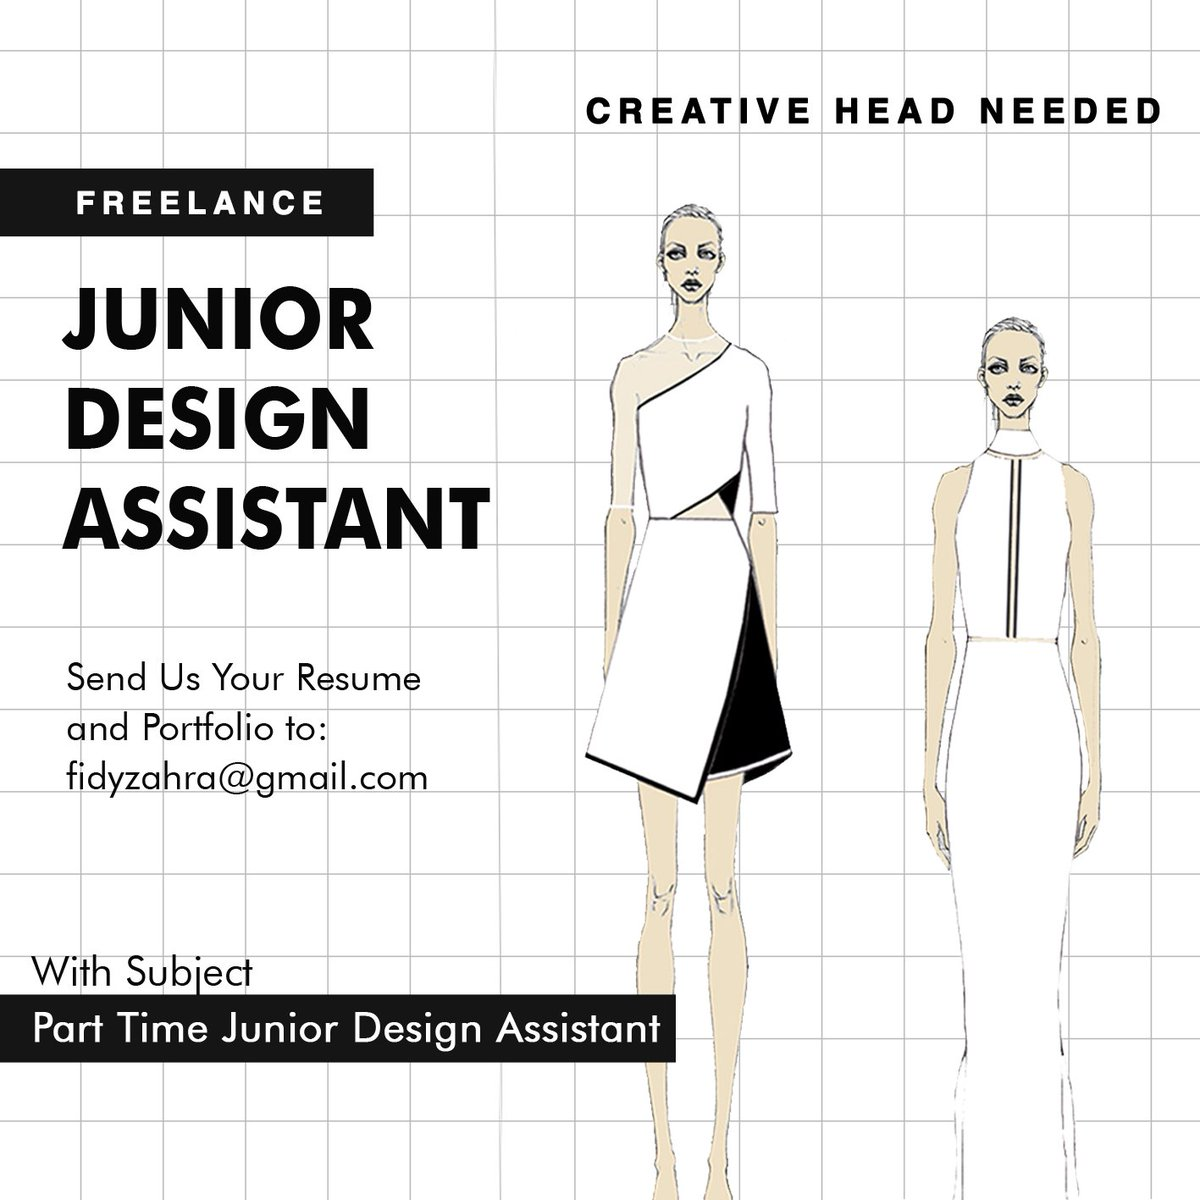 Kampus Update On Twitter Calling For Fashion Students To Be A Freelance Junior Design Assistant In A Redy To Wear Clothing Line In Jakarta Kujobs Https T Co Wc4hke7lvb